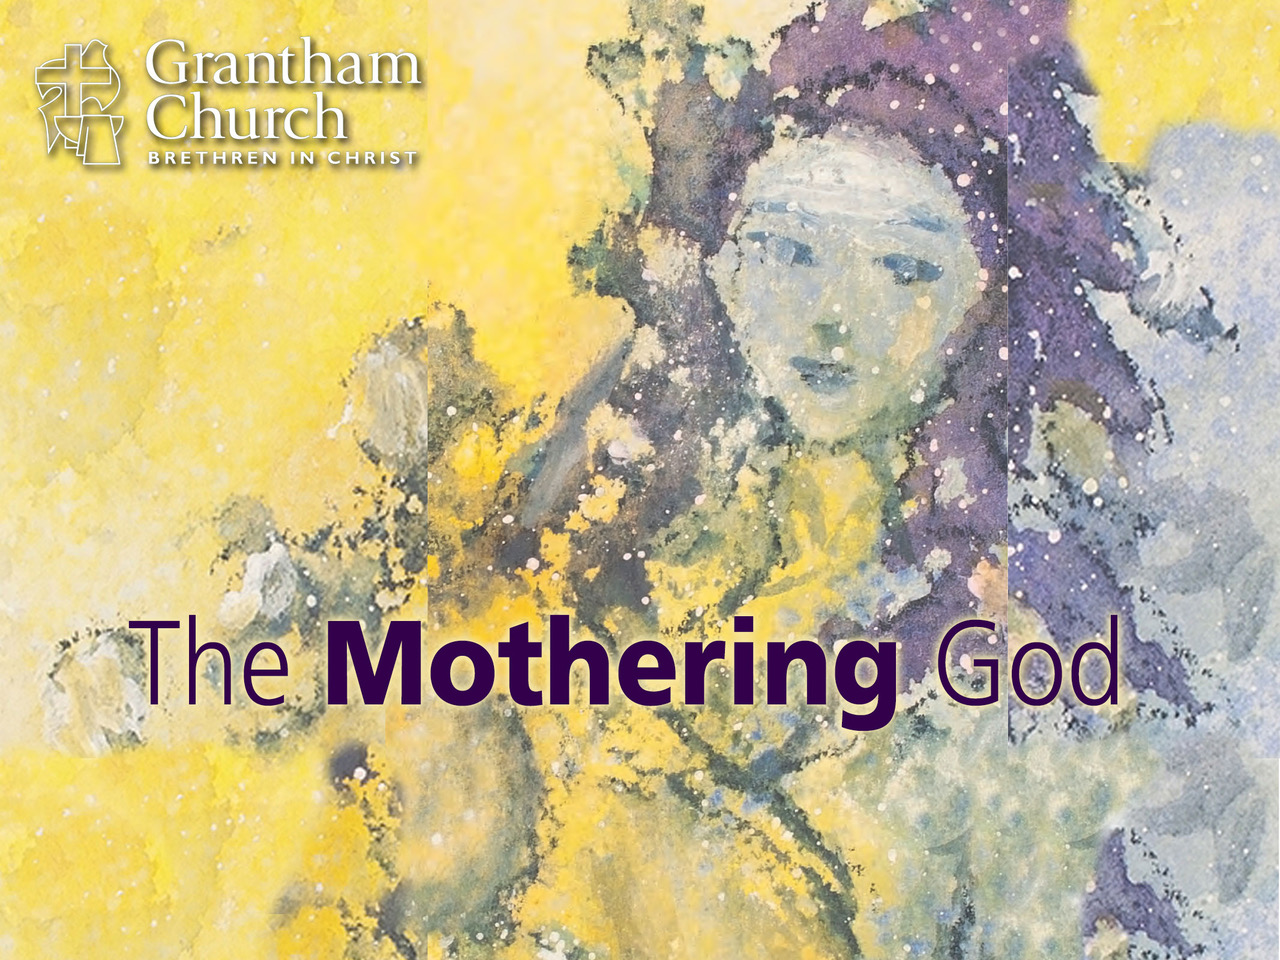 the-mothering-god-slide_519.jpeg